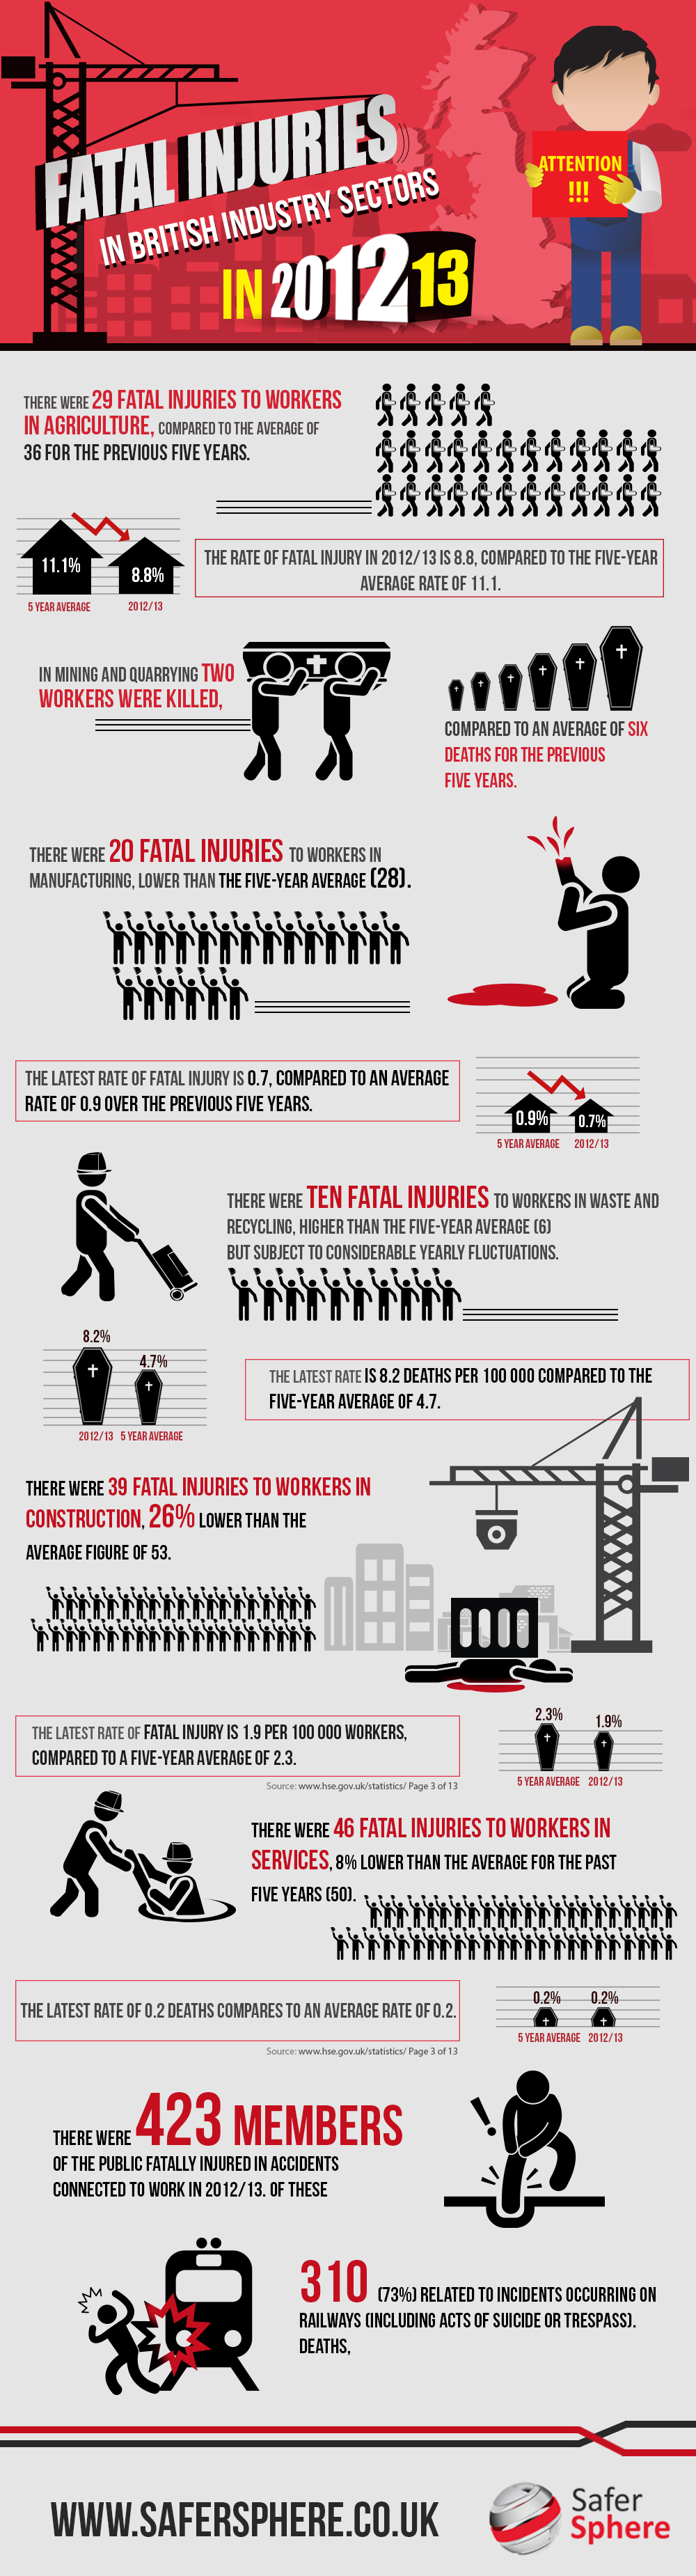 UK Industrial Fatalities Infographic